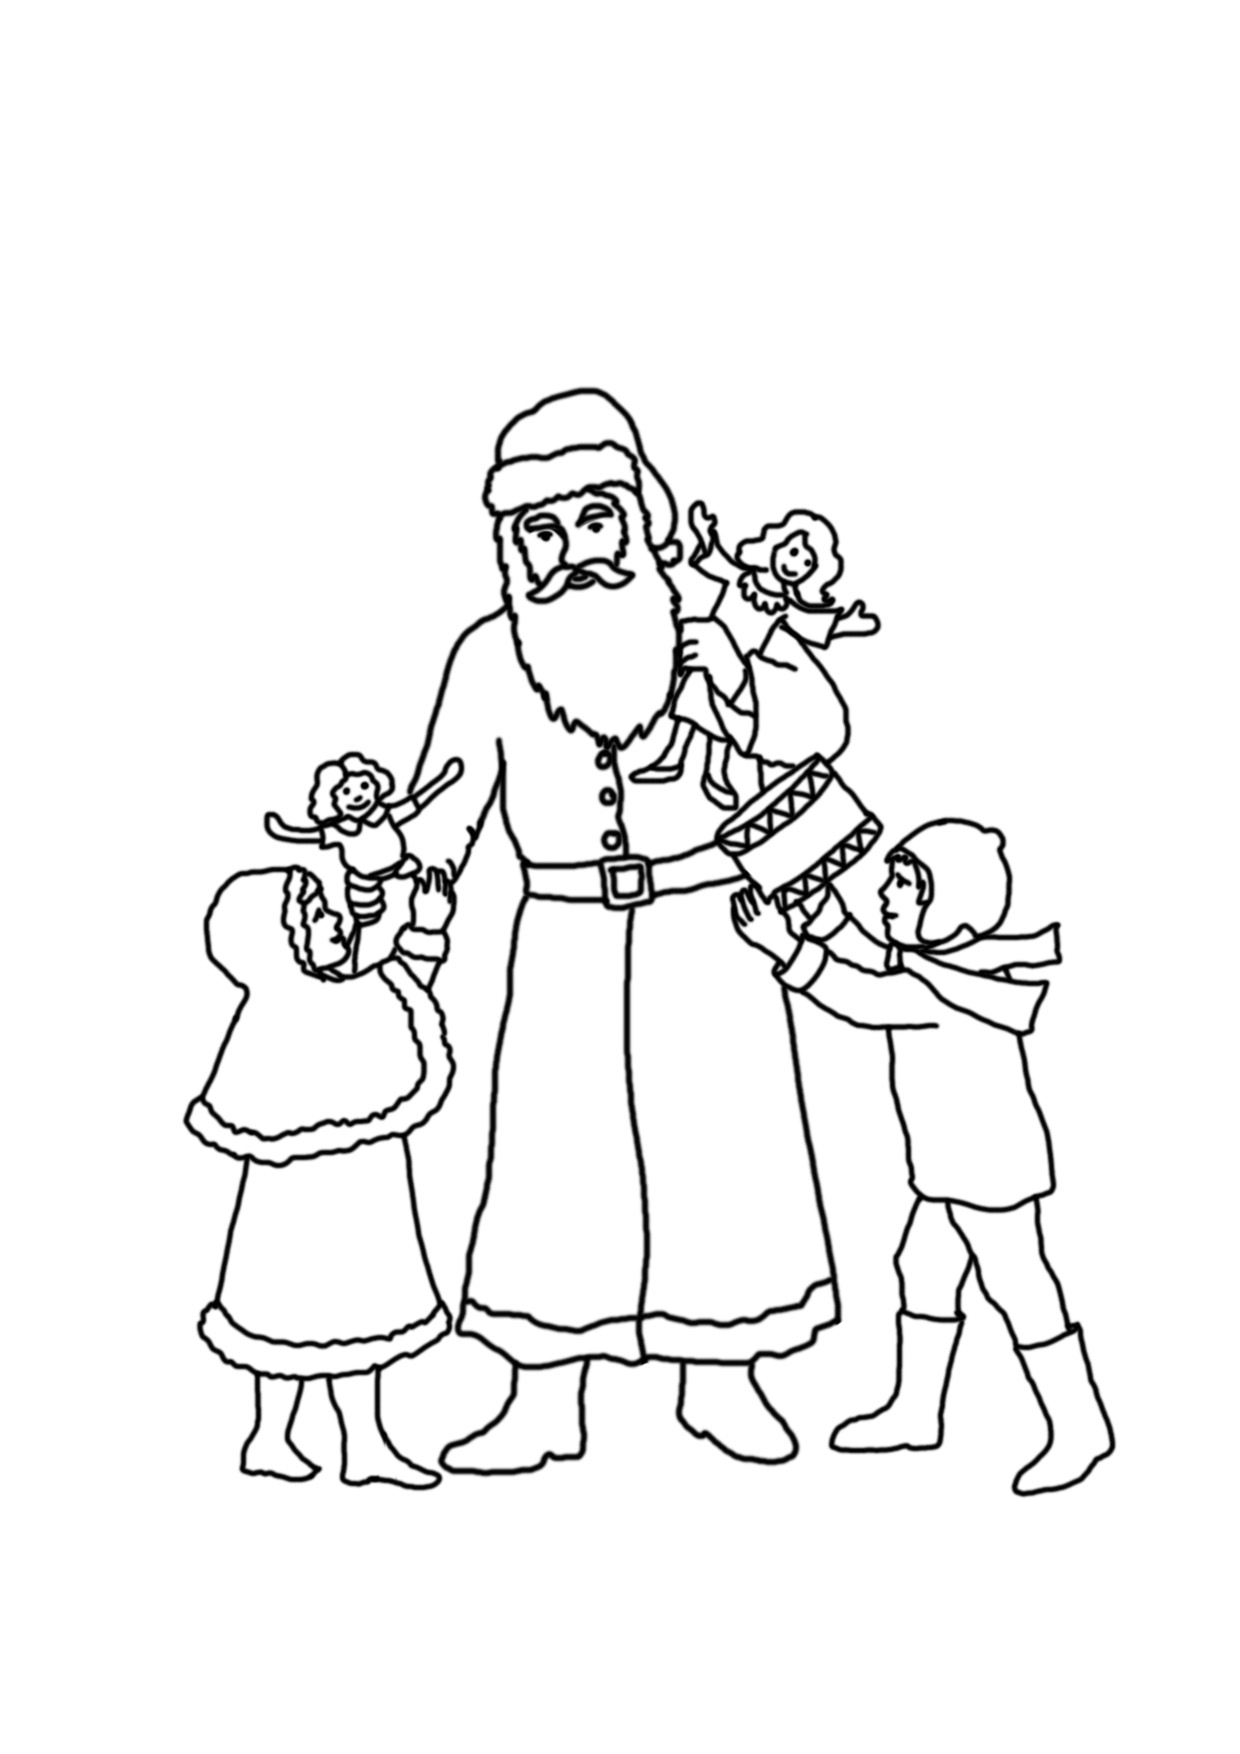 Santa Suit Coloring Page With Christmas Pages